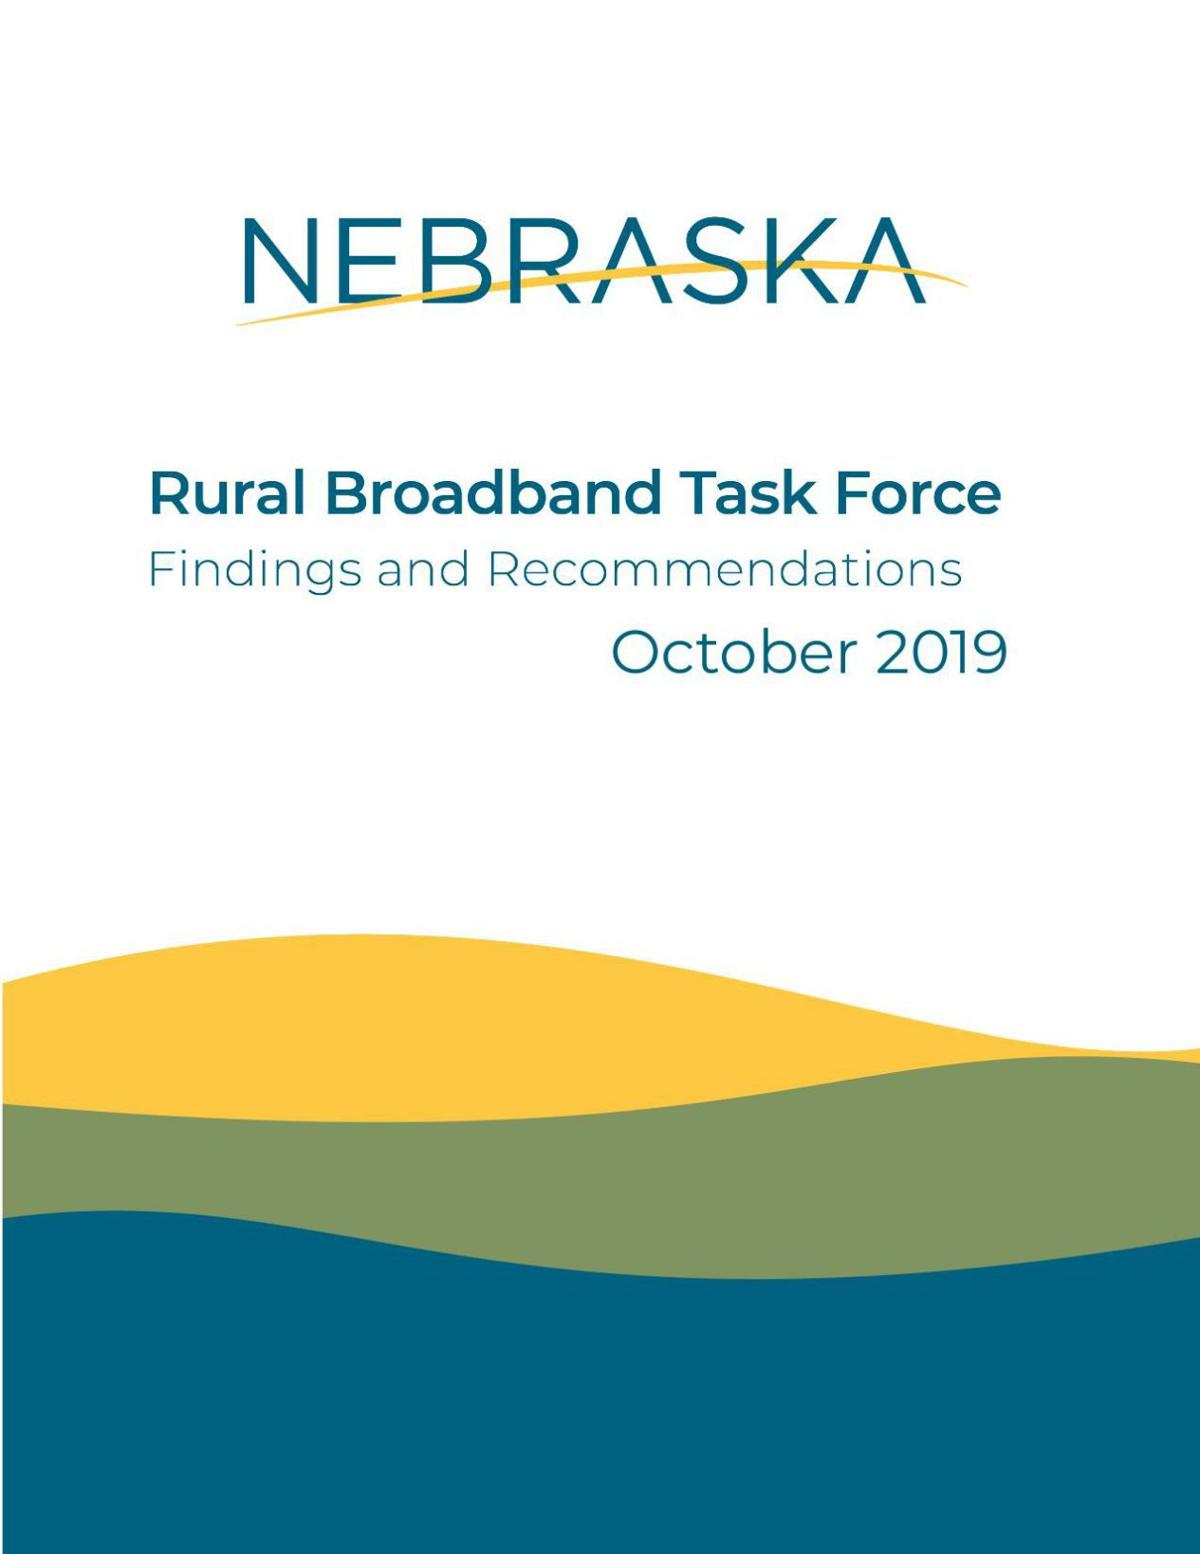 Rural Broadband Task Force Report